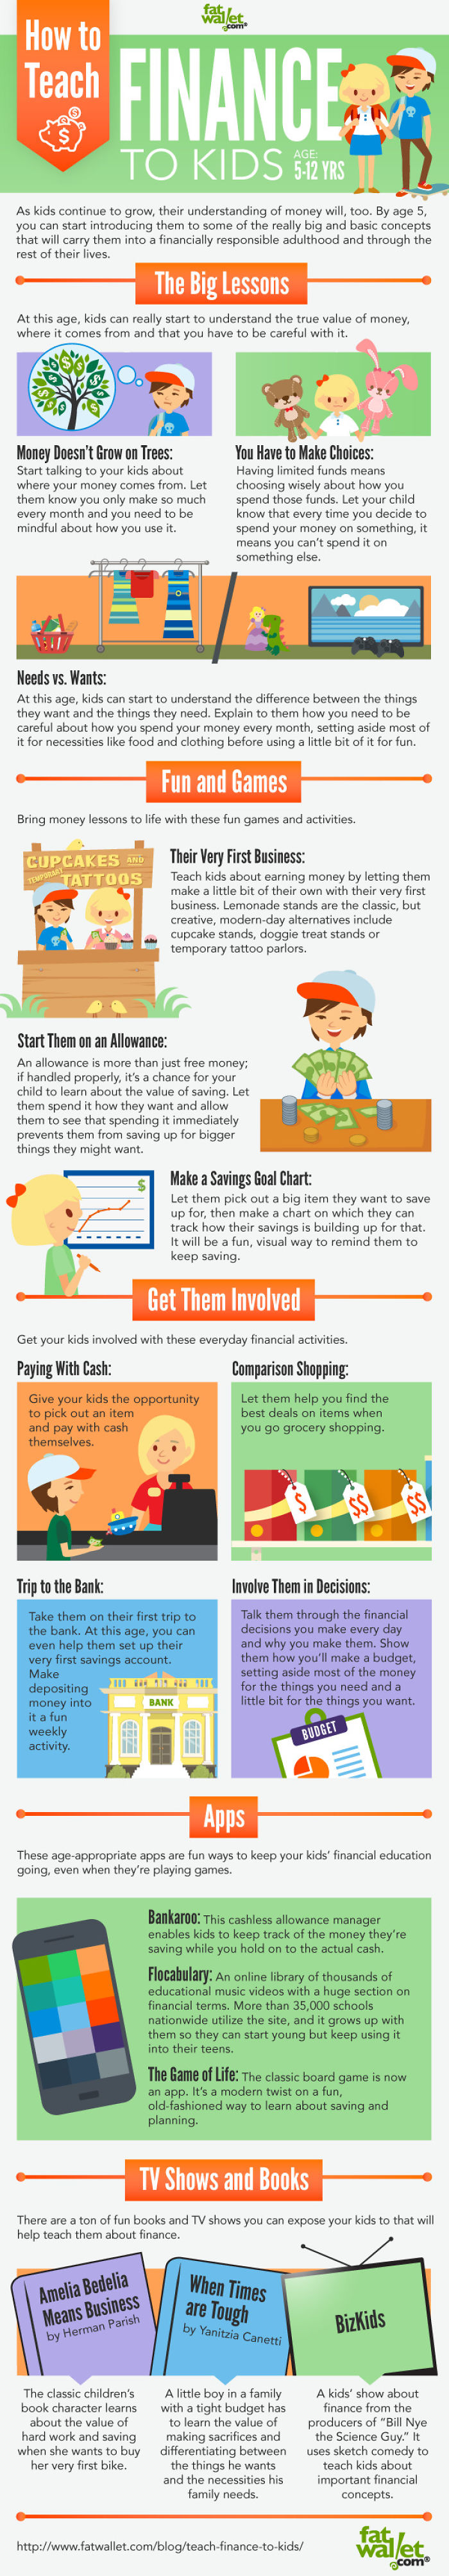 Simple Guide To Teaching Finance To Kids